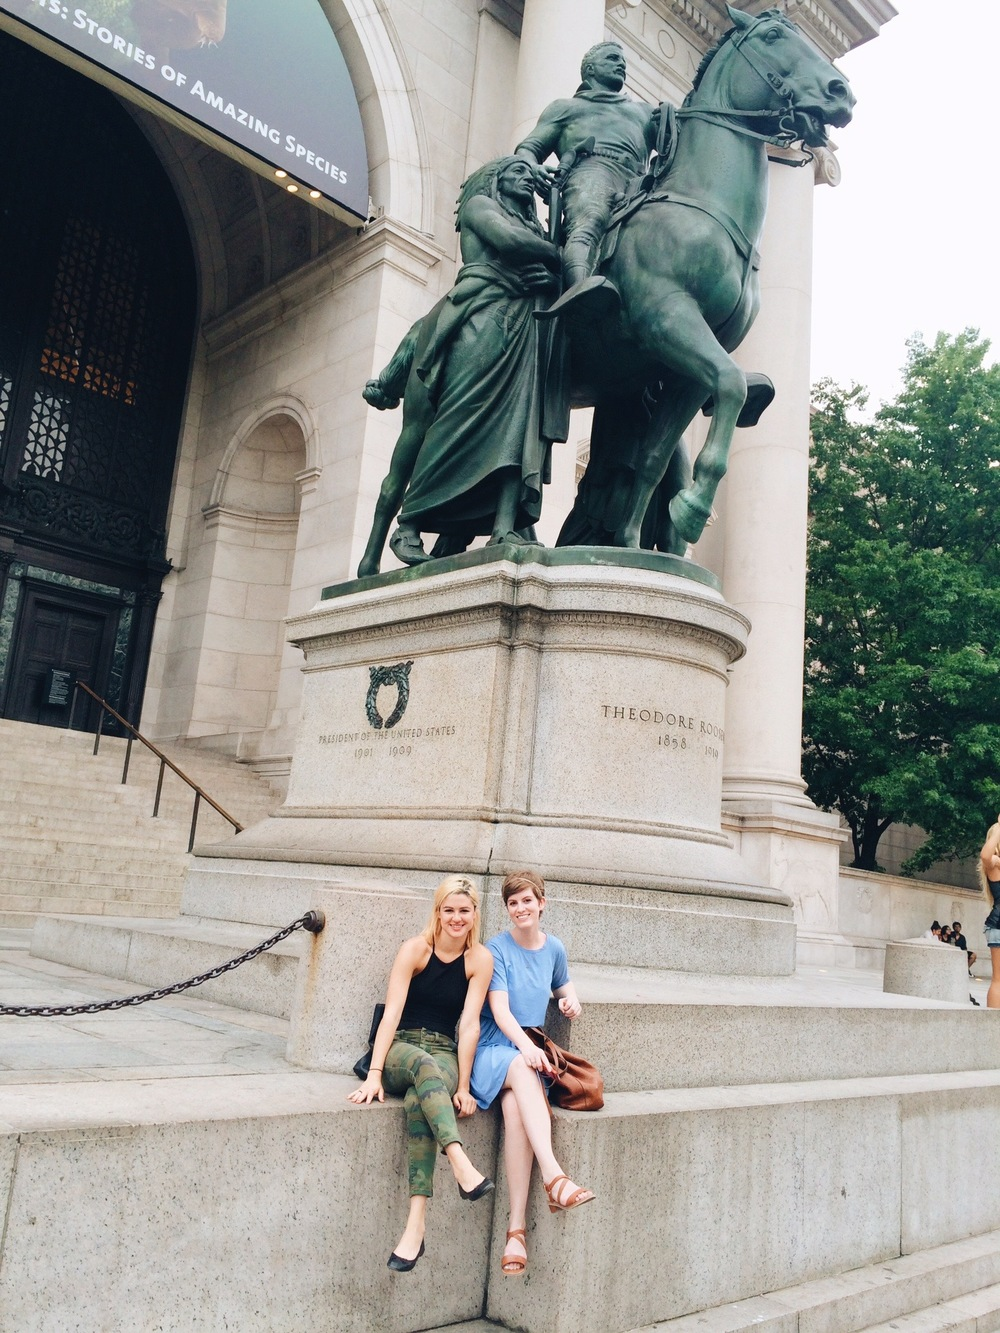 My BFF came to visit and we took our annual awkward photo in front of the Natural History Museum.